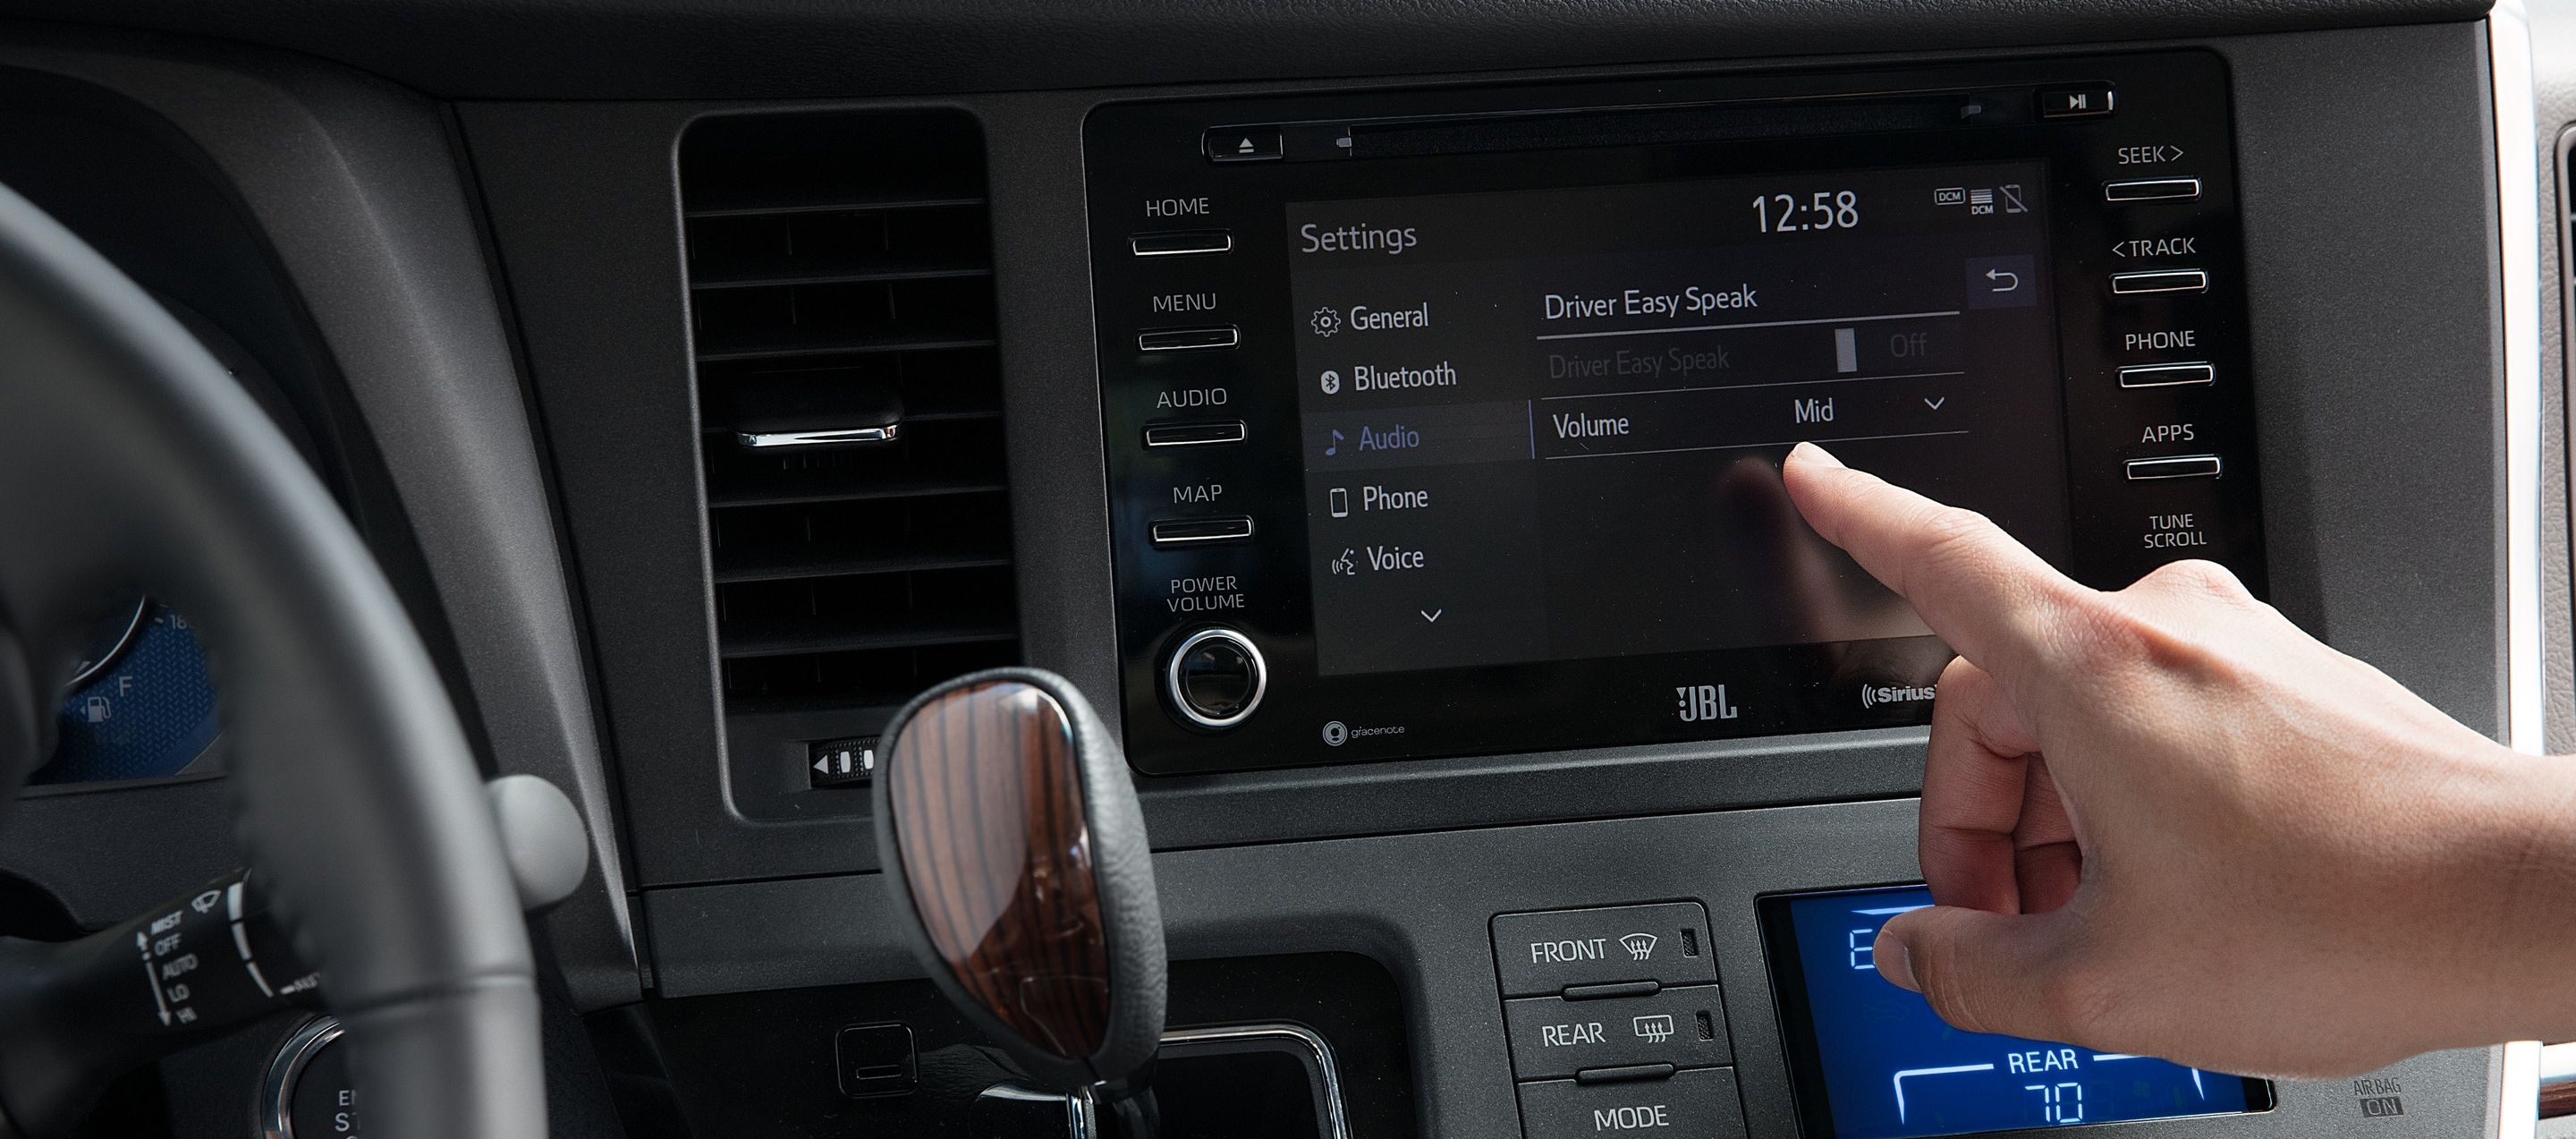 The Modern Dashboard of the 2020 Sienna